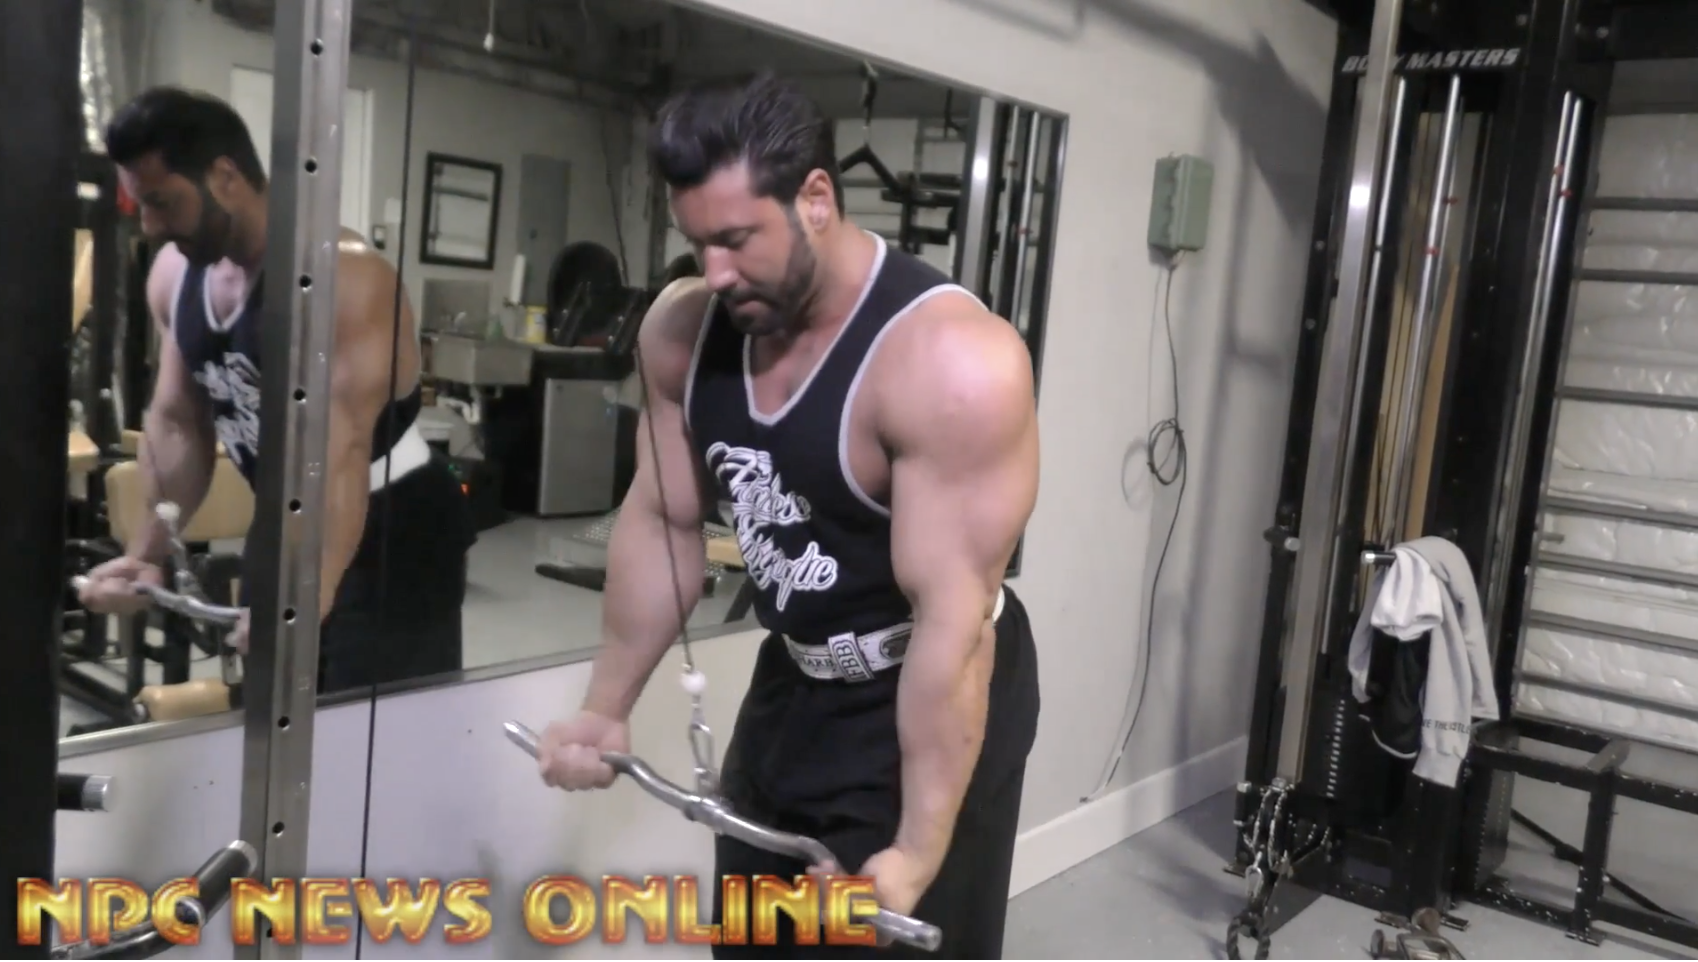 IFBB Classic Pro Steve Mousharbash Shares A Workout With Travales Blount At His Home Gym